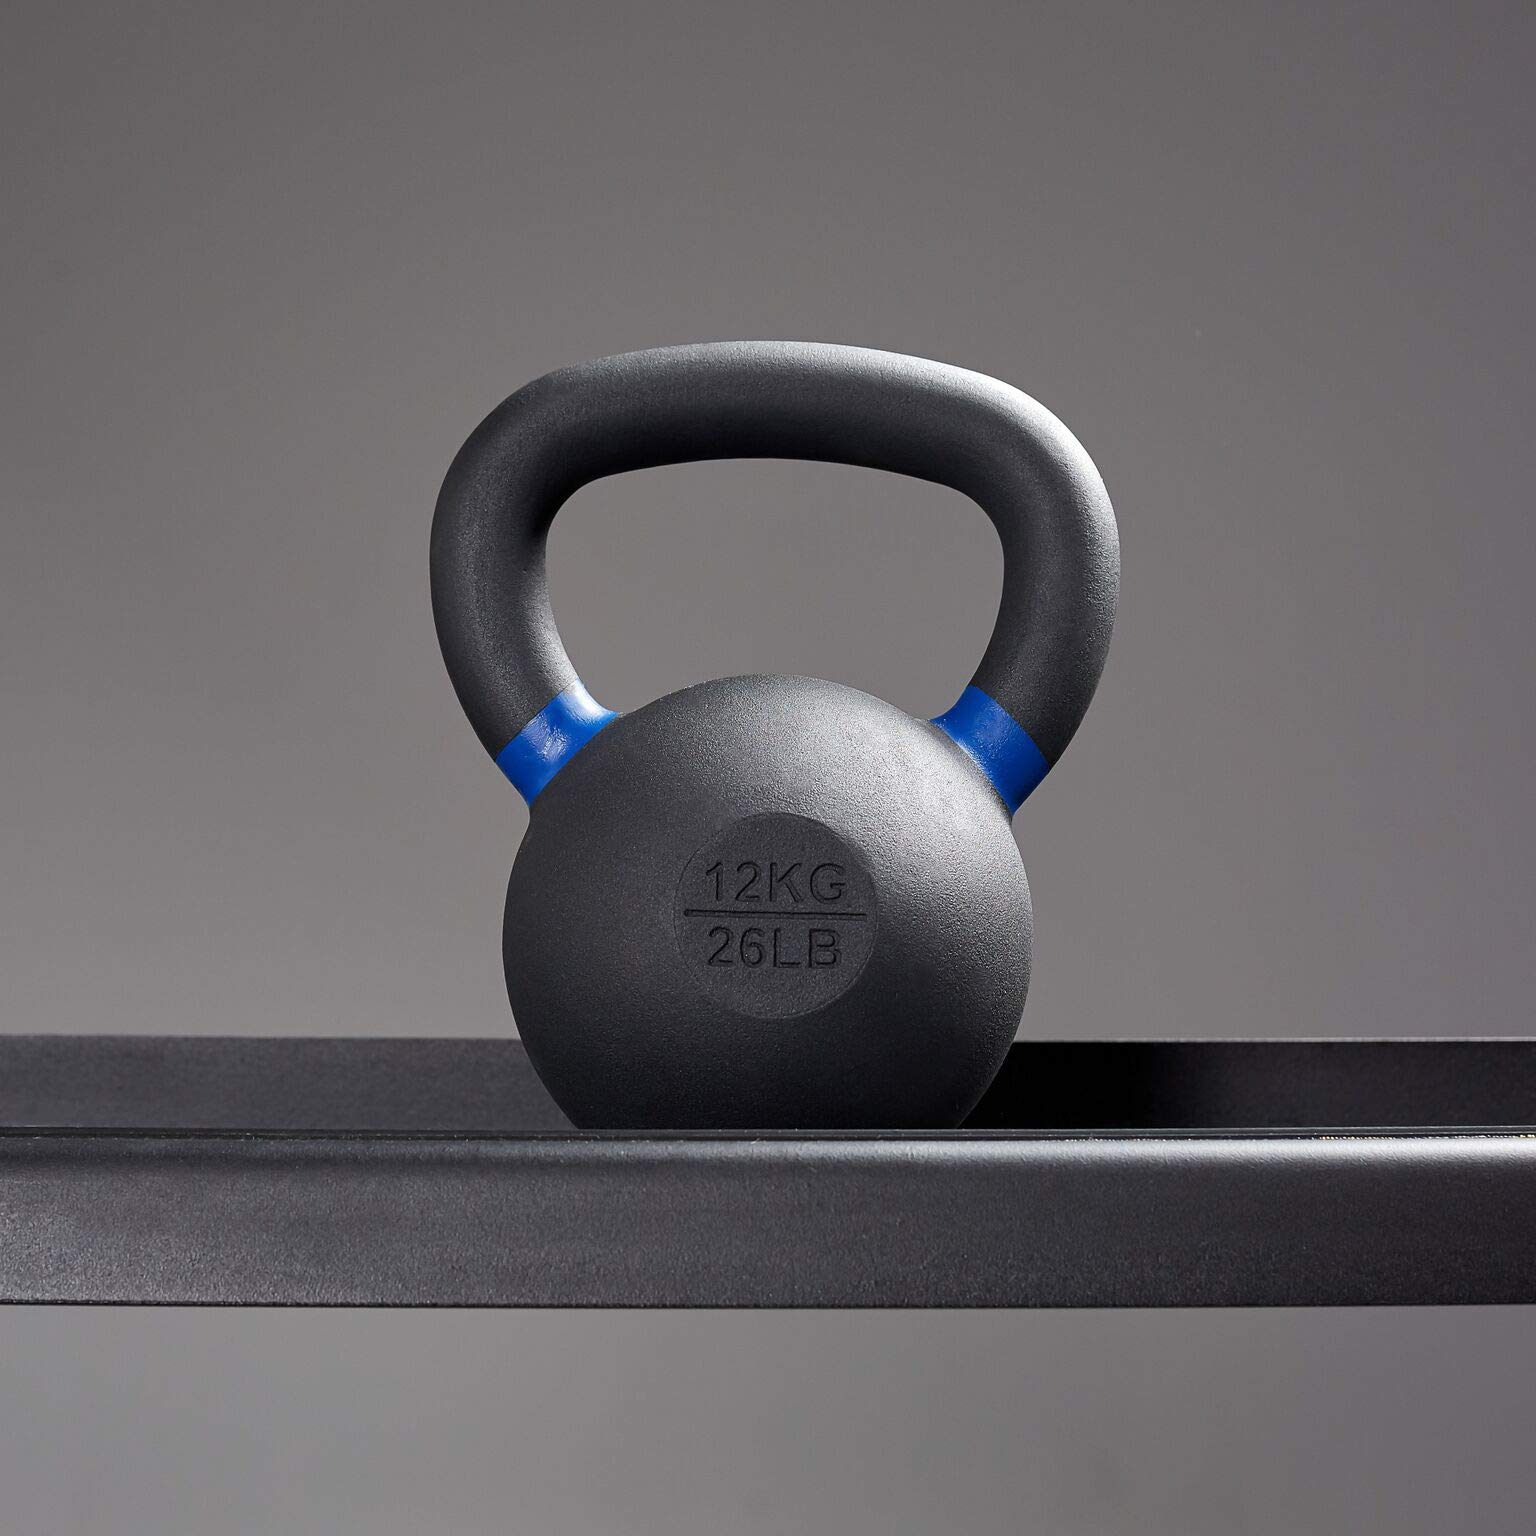 Rep 12 kg Kettlebell for Strength and Conditioning by Rep Fitness (Image #3)